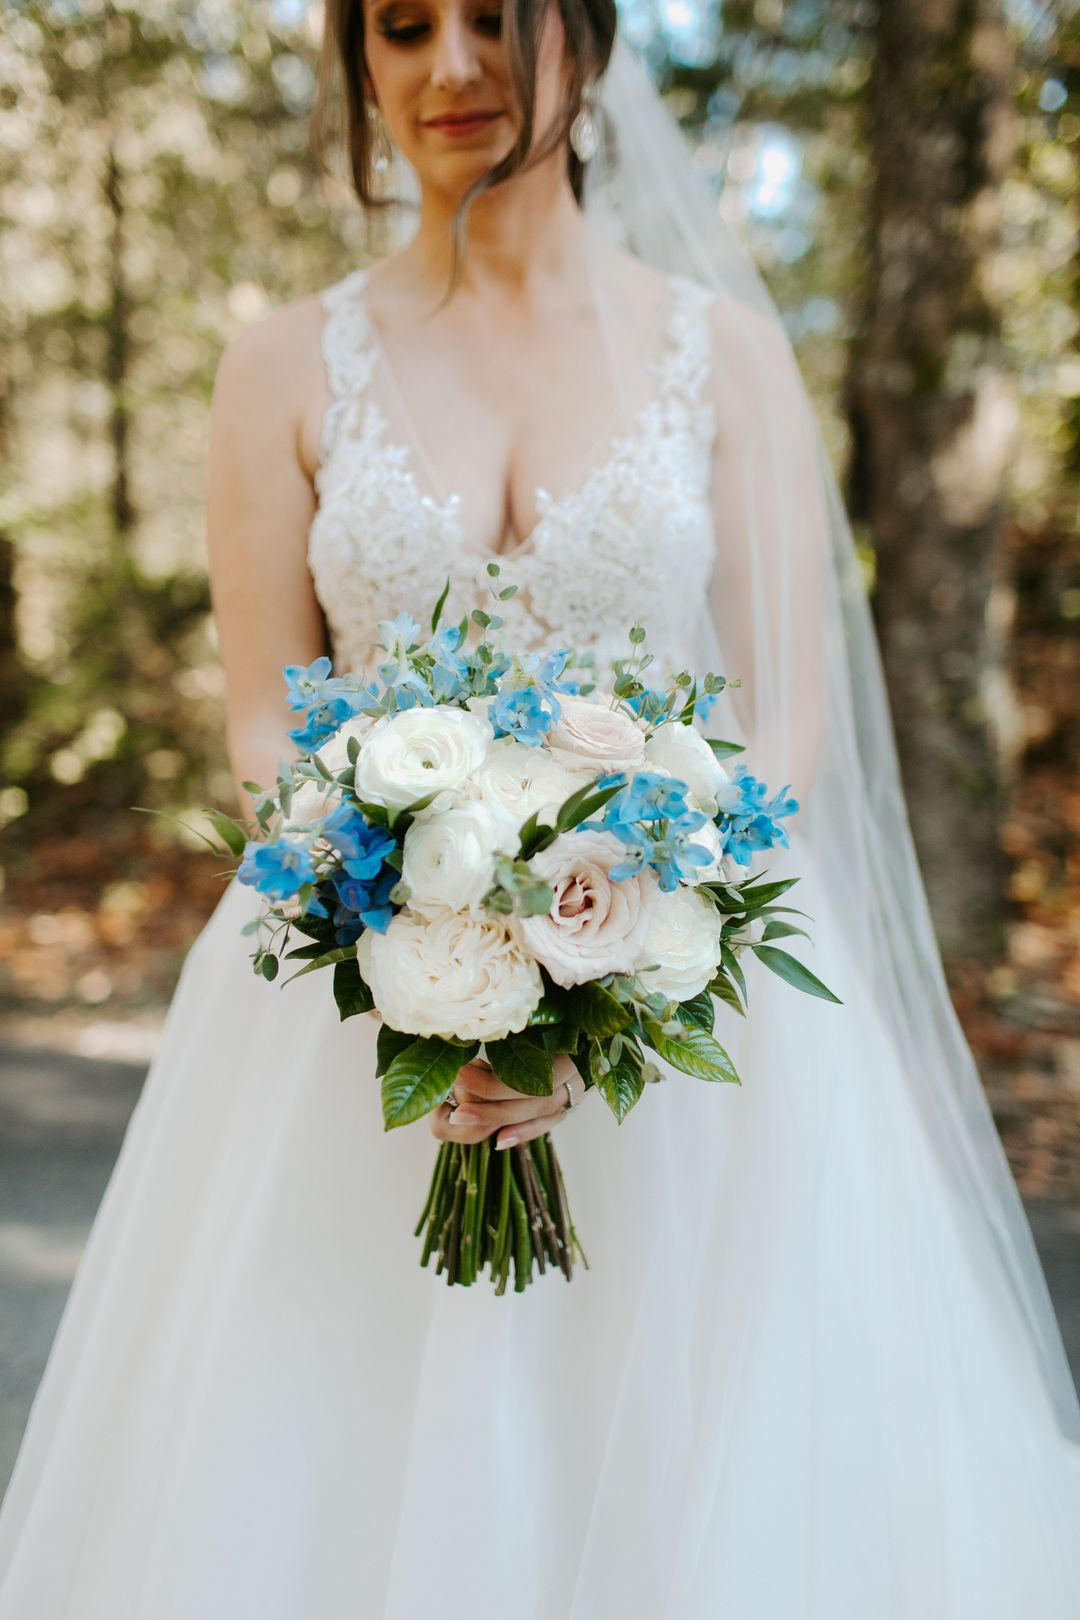 white and blue wedding, bride holding bouquet with white hydrangeas, blush roses and blue accent blooms